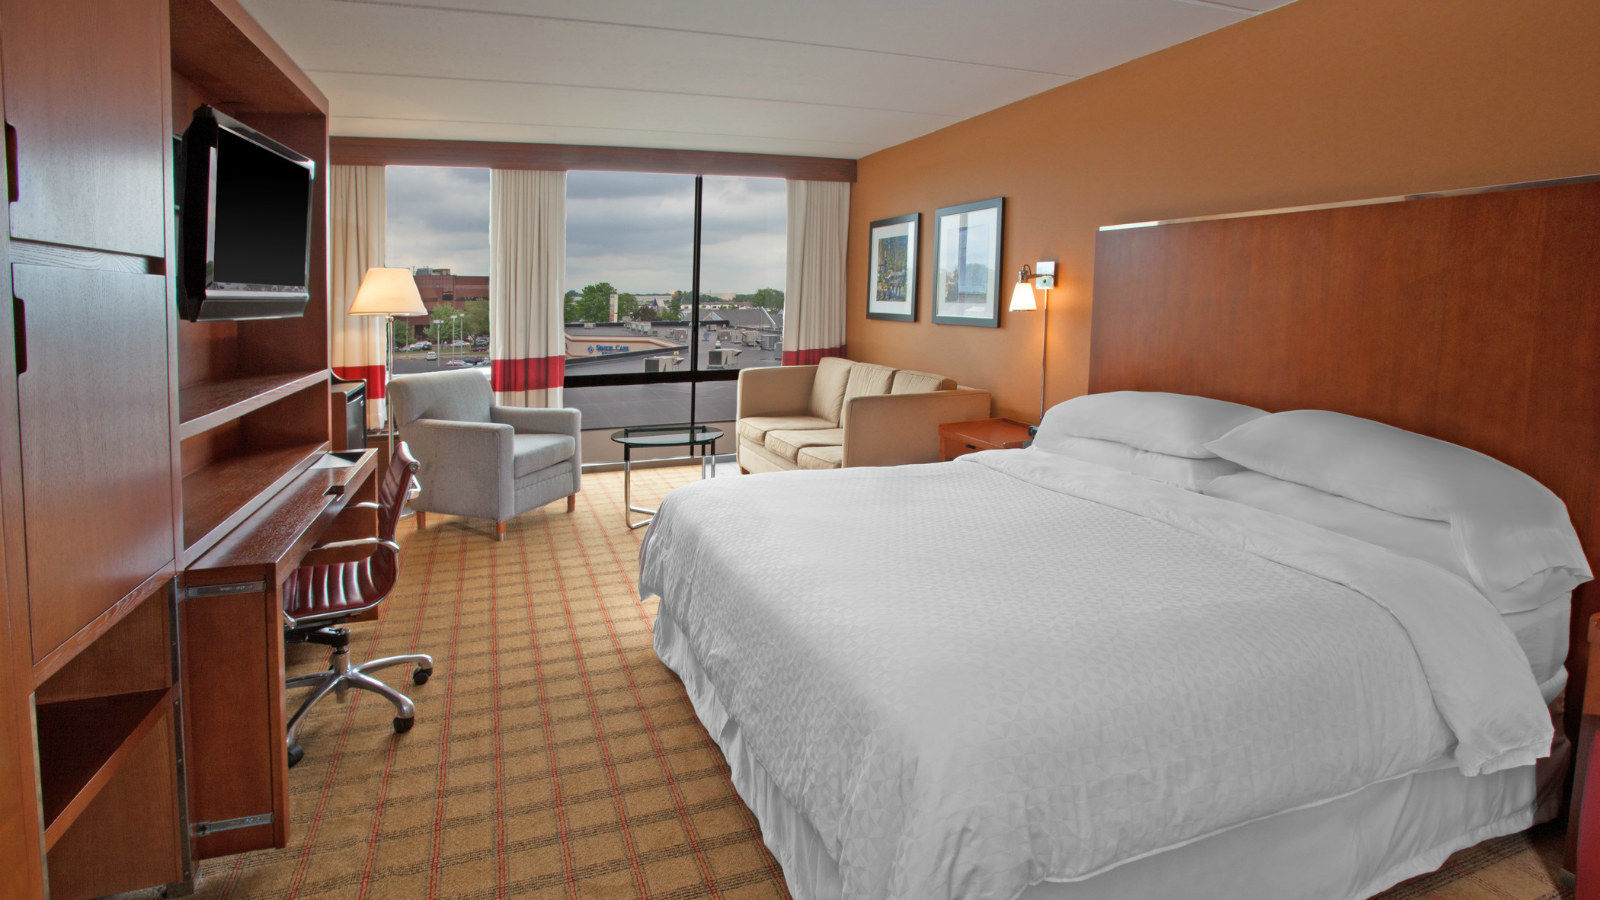 Philadelphia Accommodations - Deluxe King Room